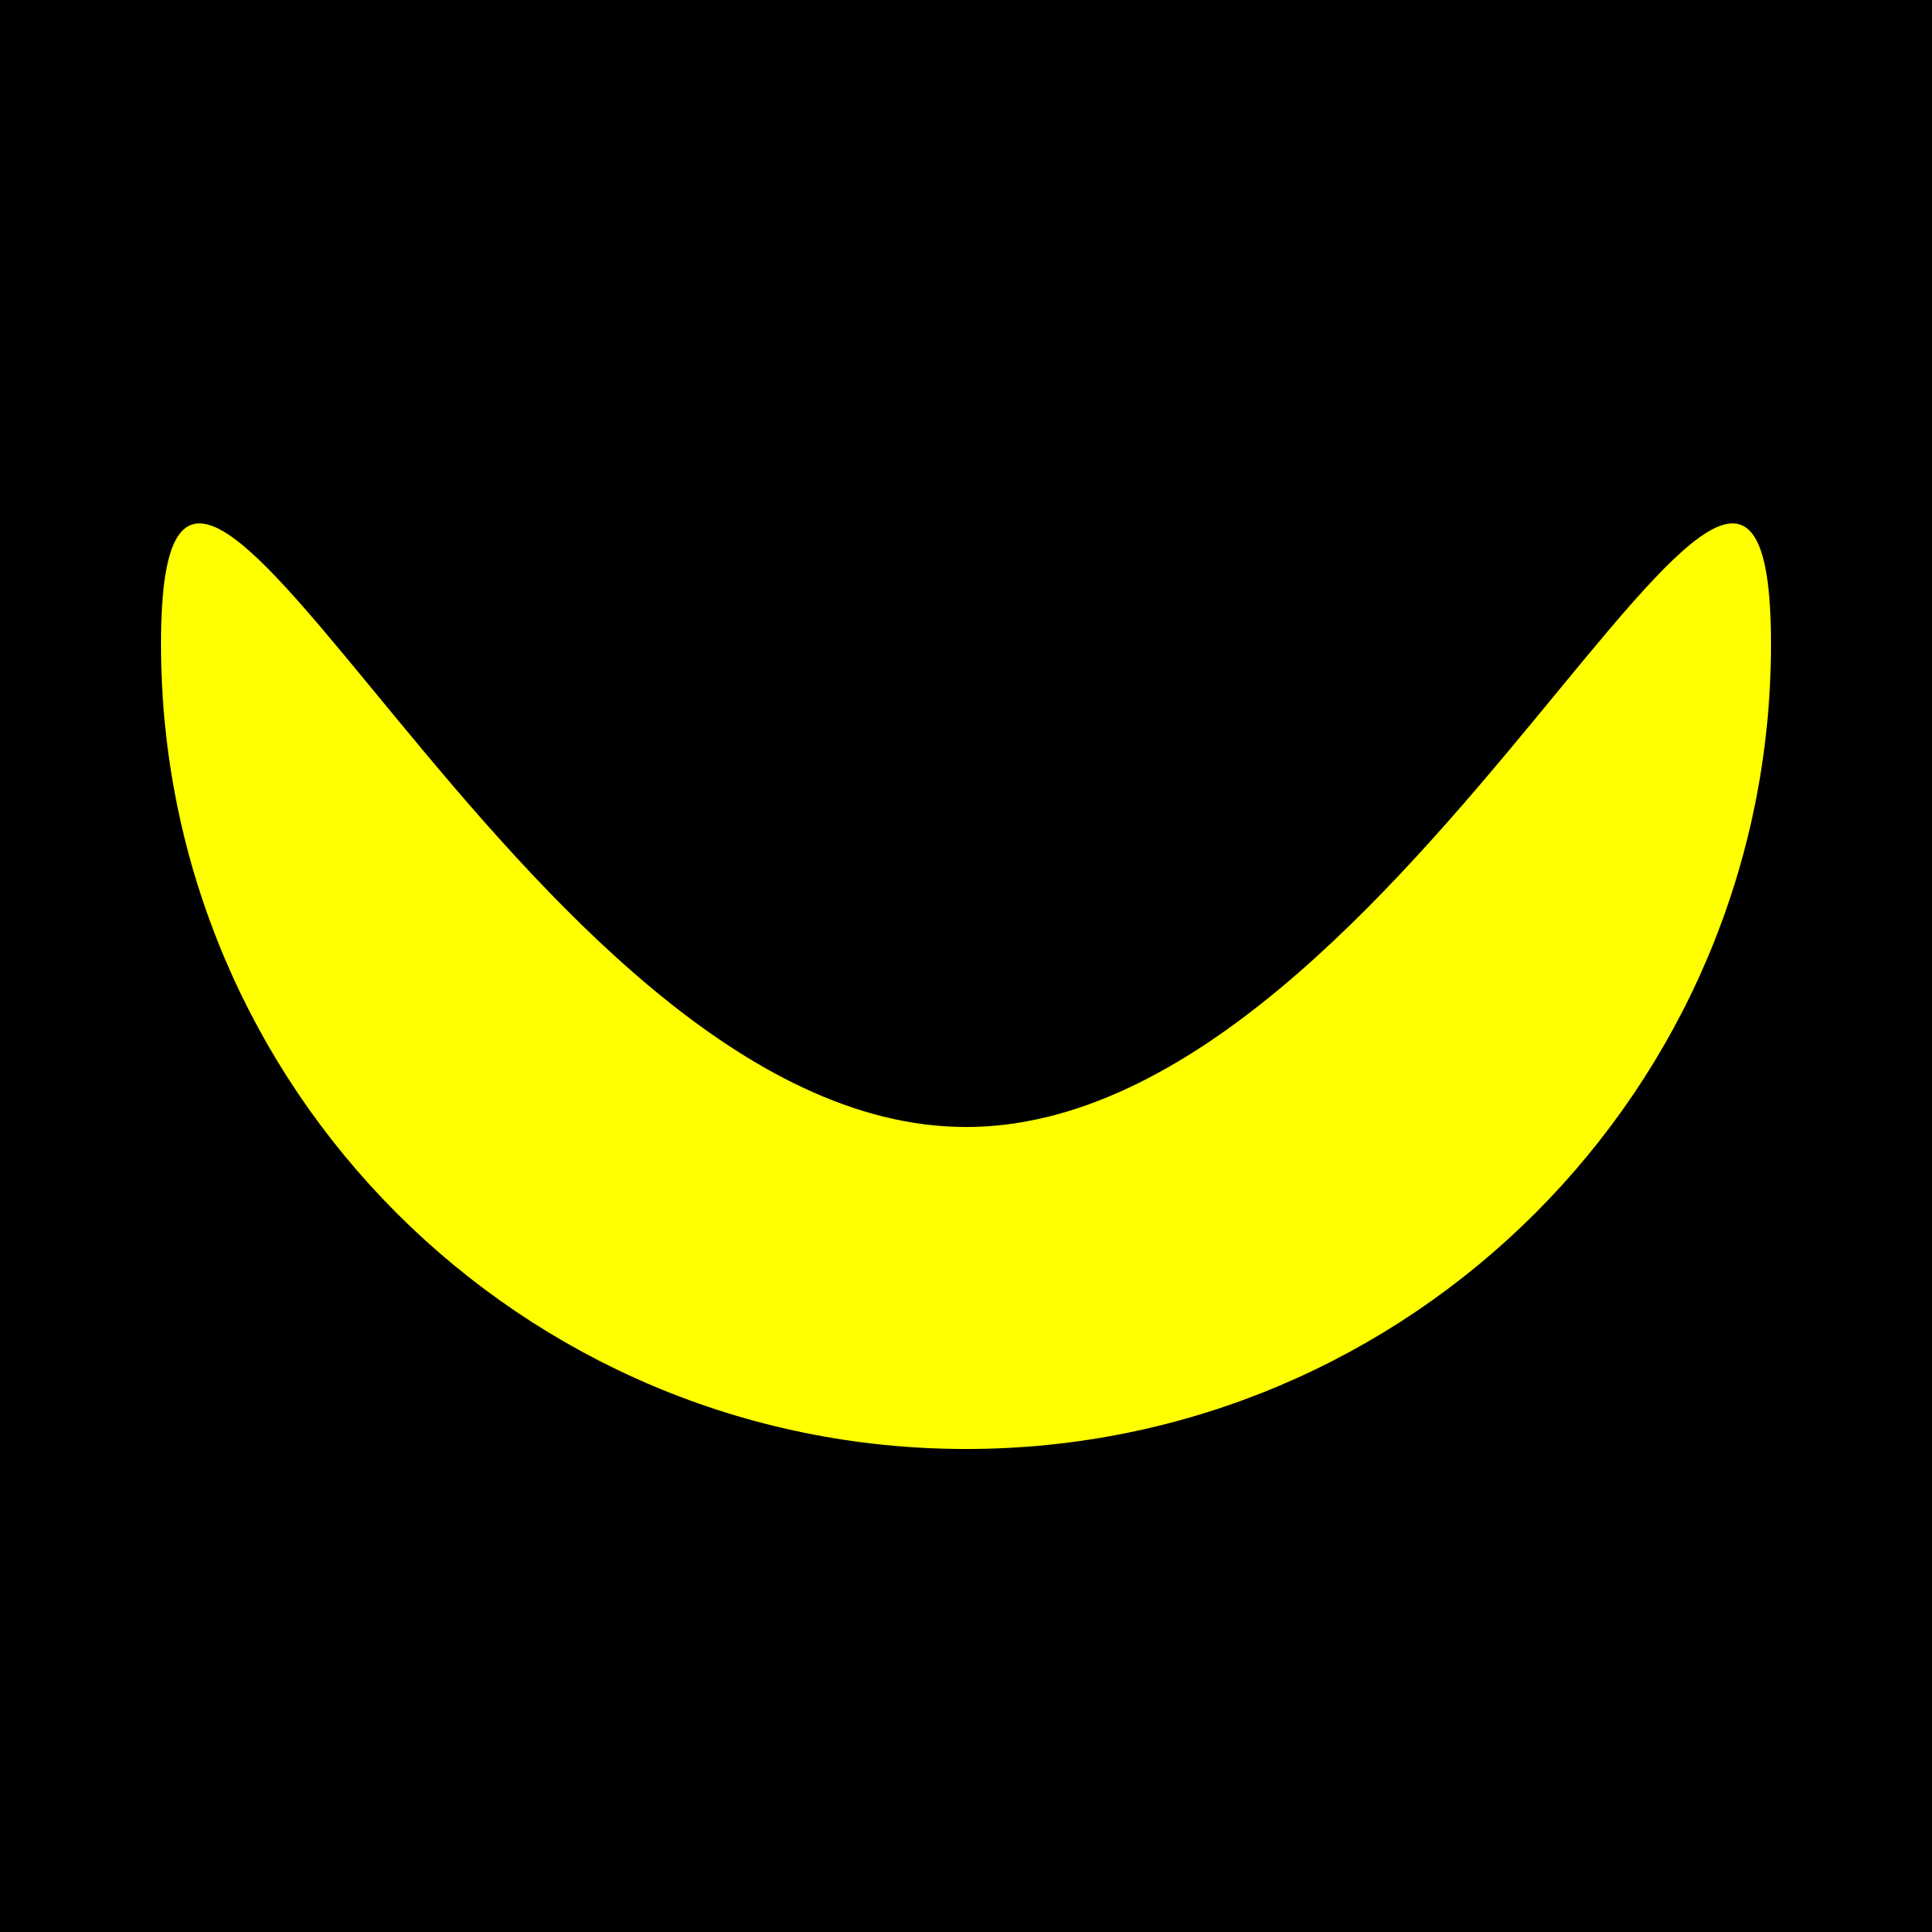 banana by 10binary